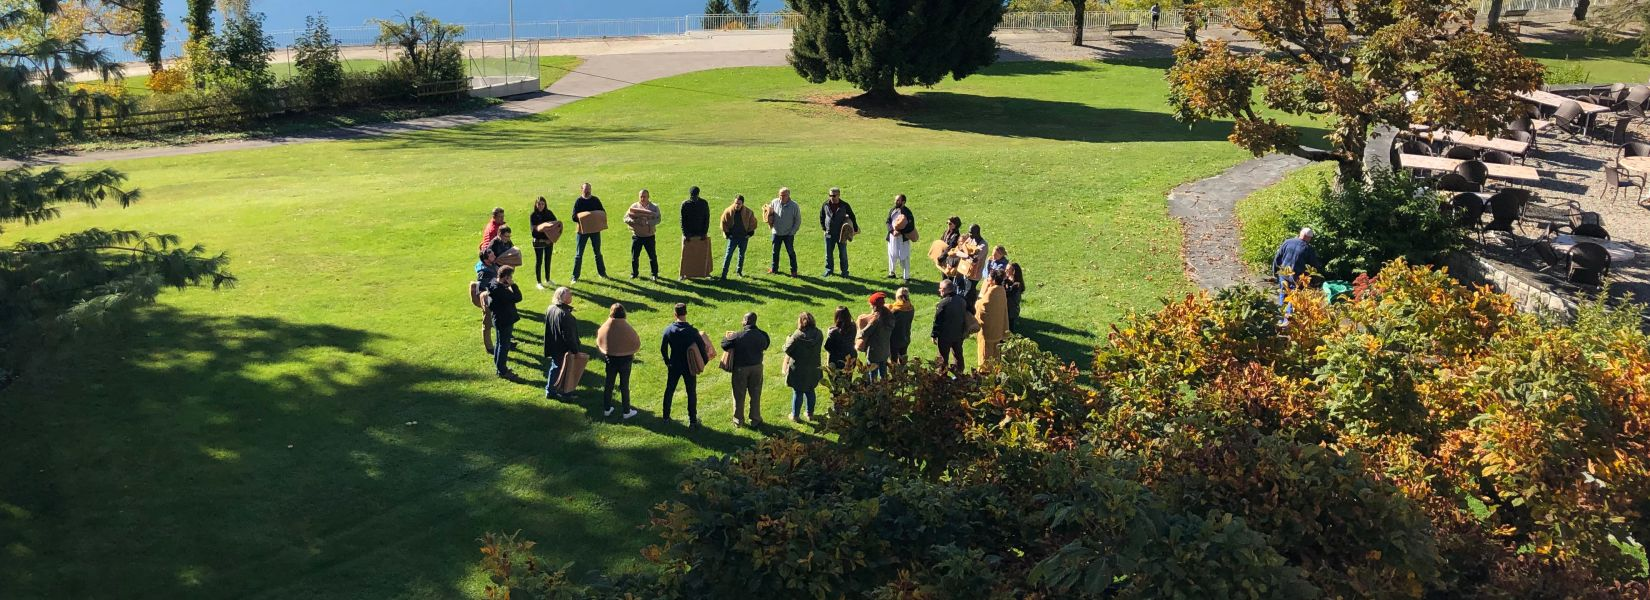 CCHN training circle outside cropped